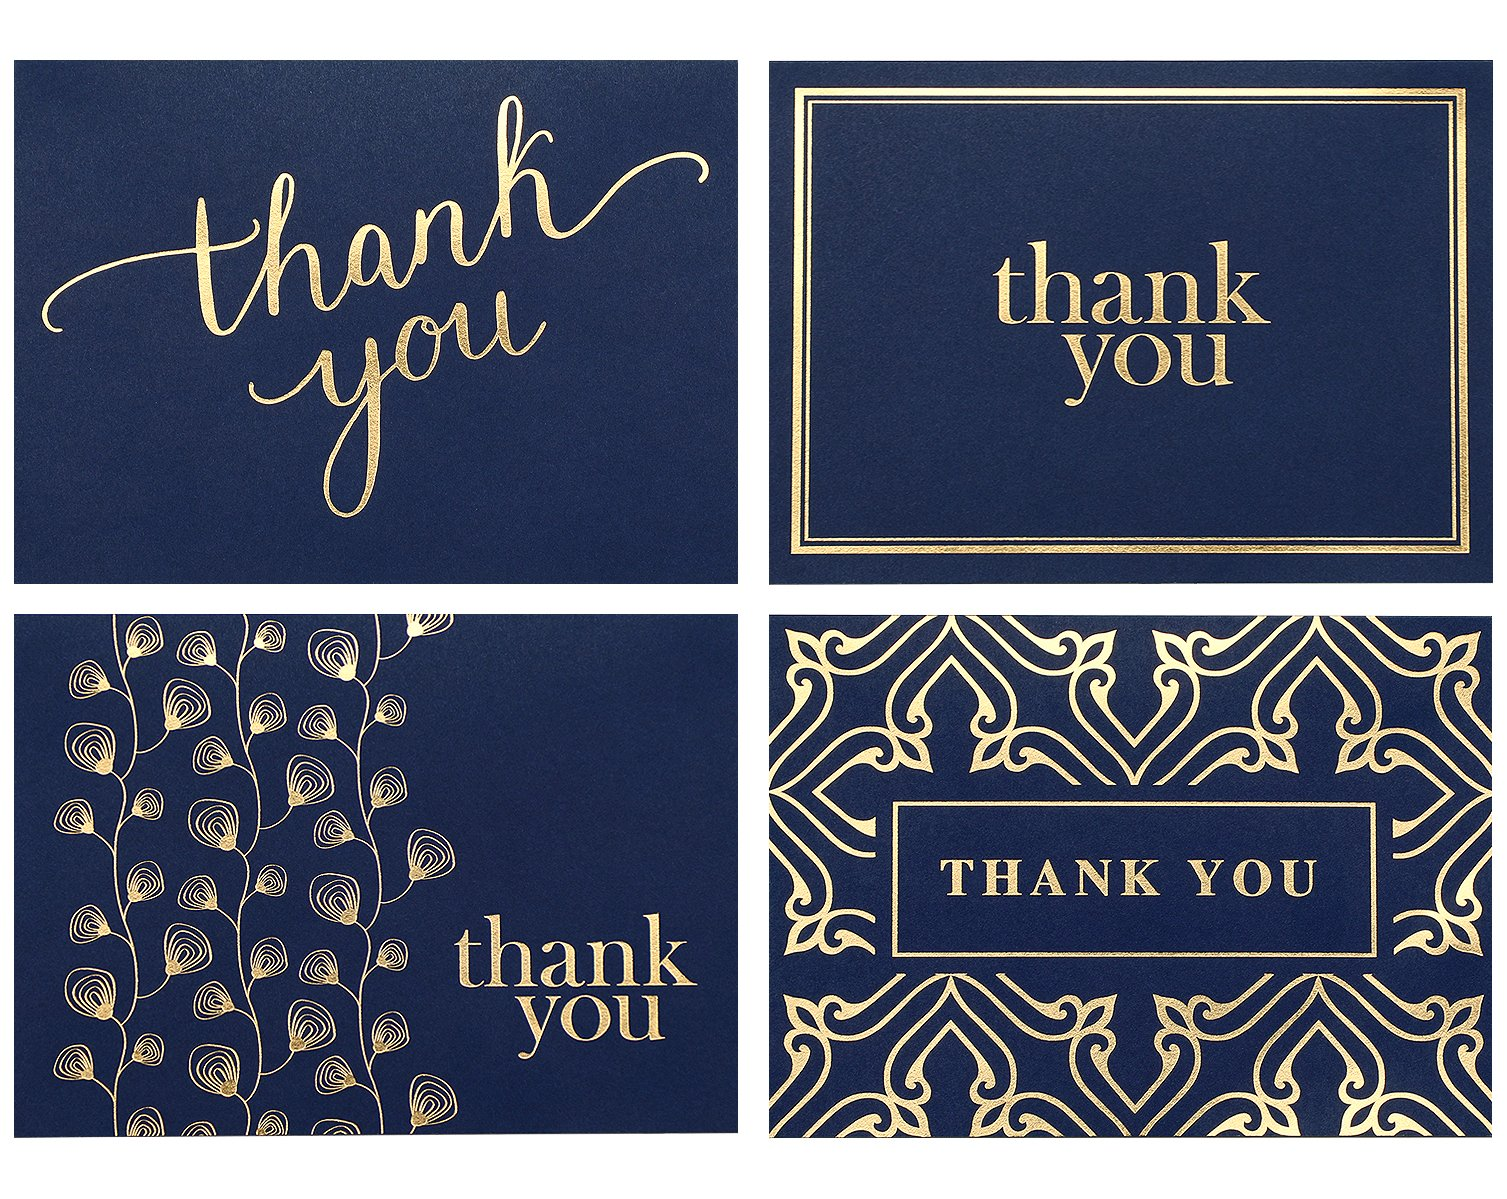 100 Thank You Cards Bulk - Thank You Notes, Navy Blue & Gold - Blank Note Cards with Envelopes - Perfect for Business, Wedding, Gift Cards, Graduation, Baby Shower, Funeral - 4x6 Photo Size by Spark Ink